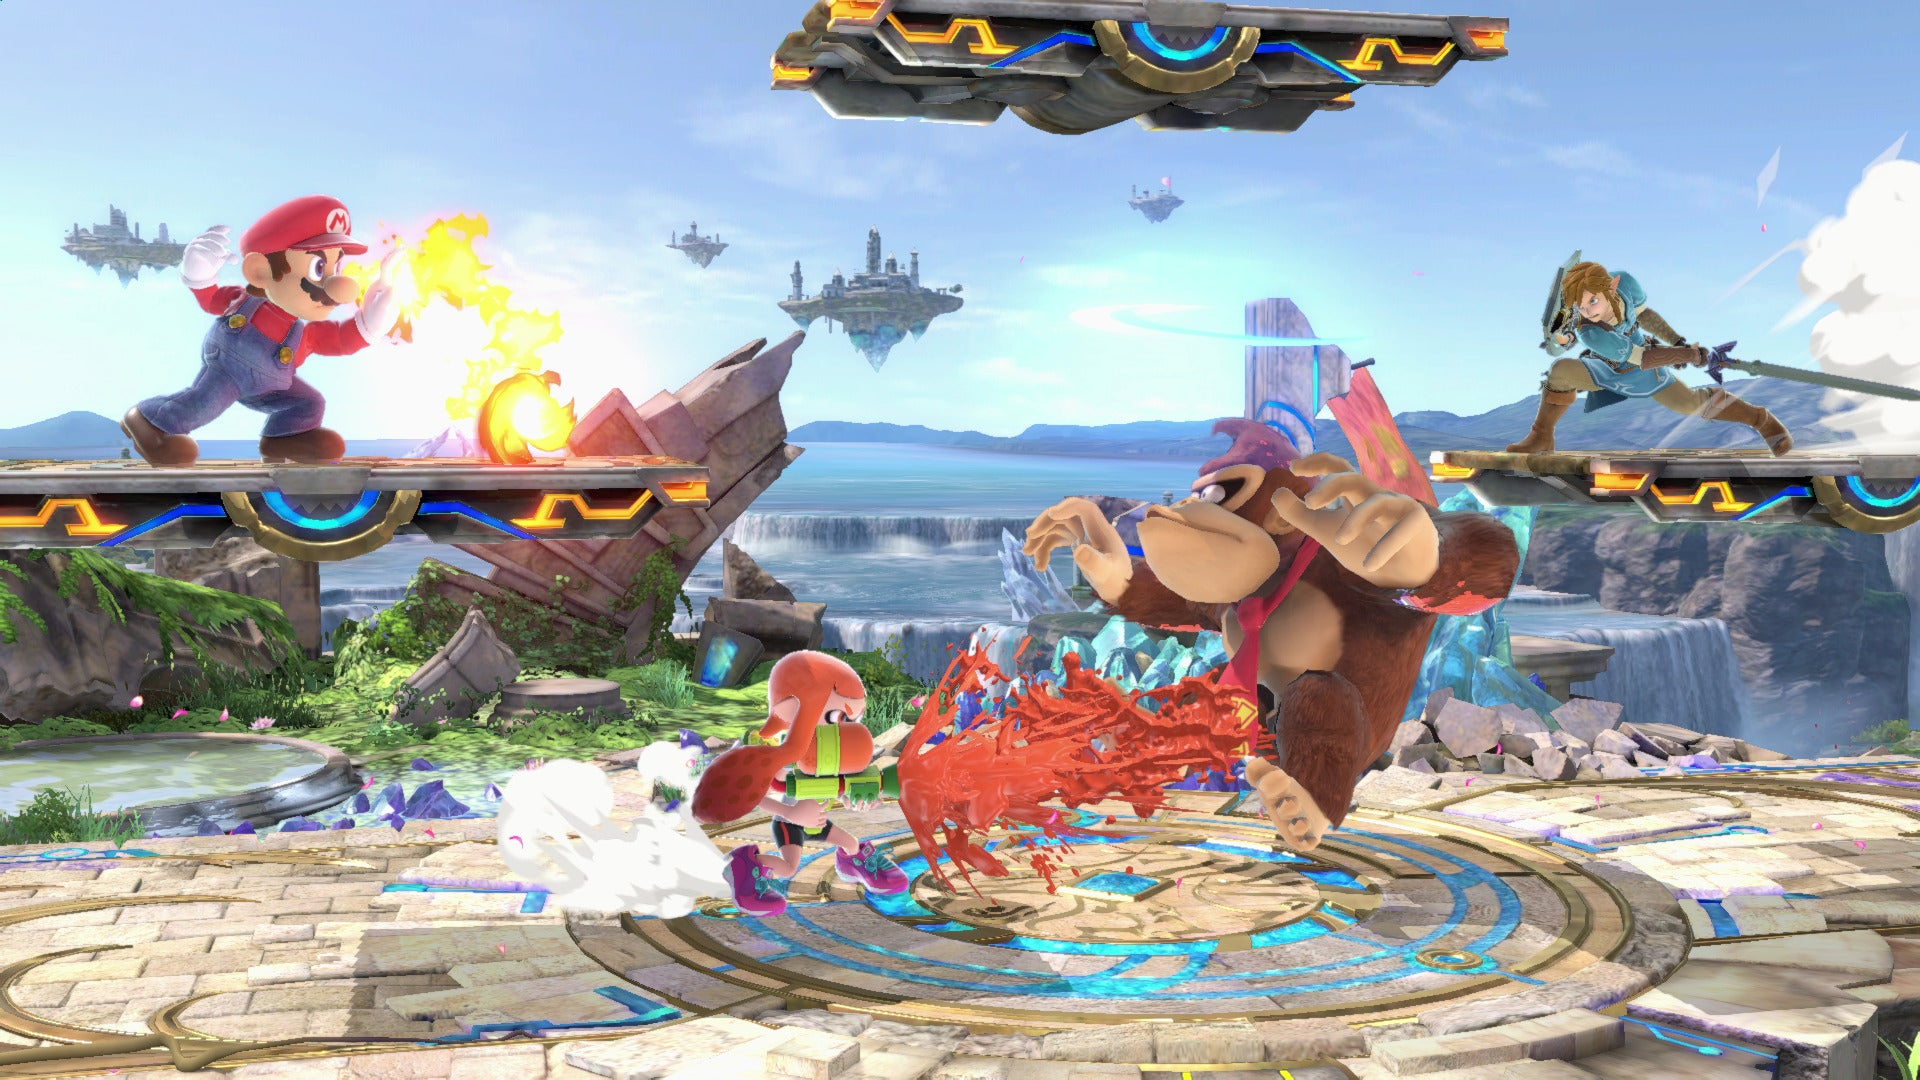 Nintendo's Internal Data Shows That Smash Bros. Ultimate Is Pretty Balanced